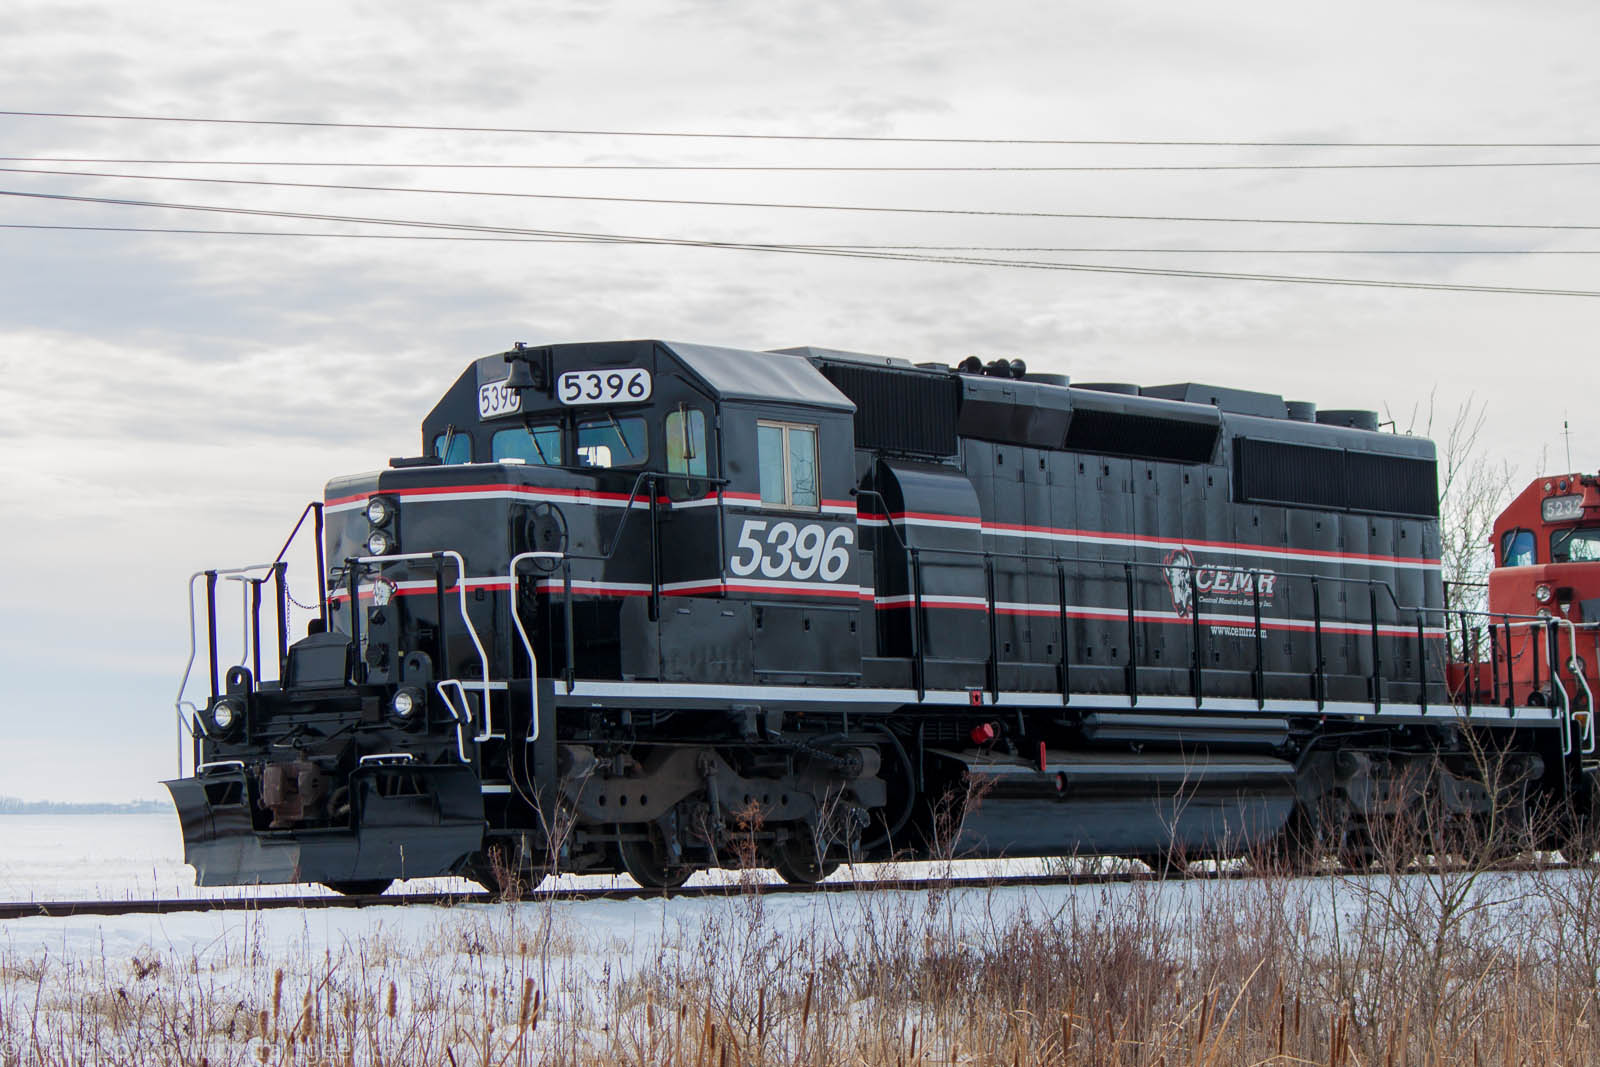 CEMR 5396 in Winnipeg, MB 2012/11/20